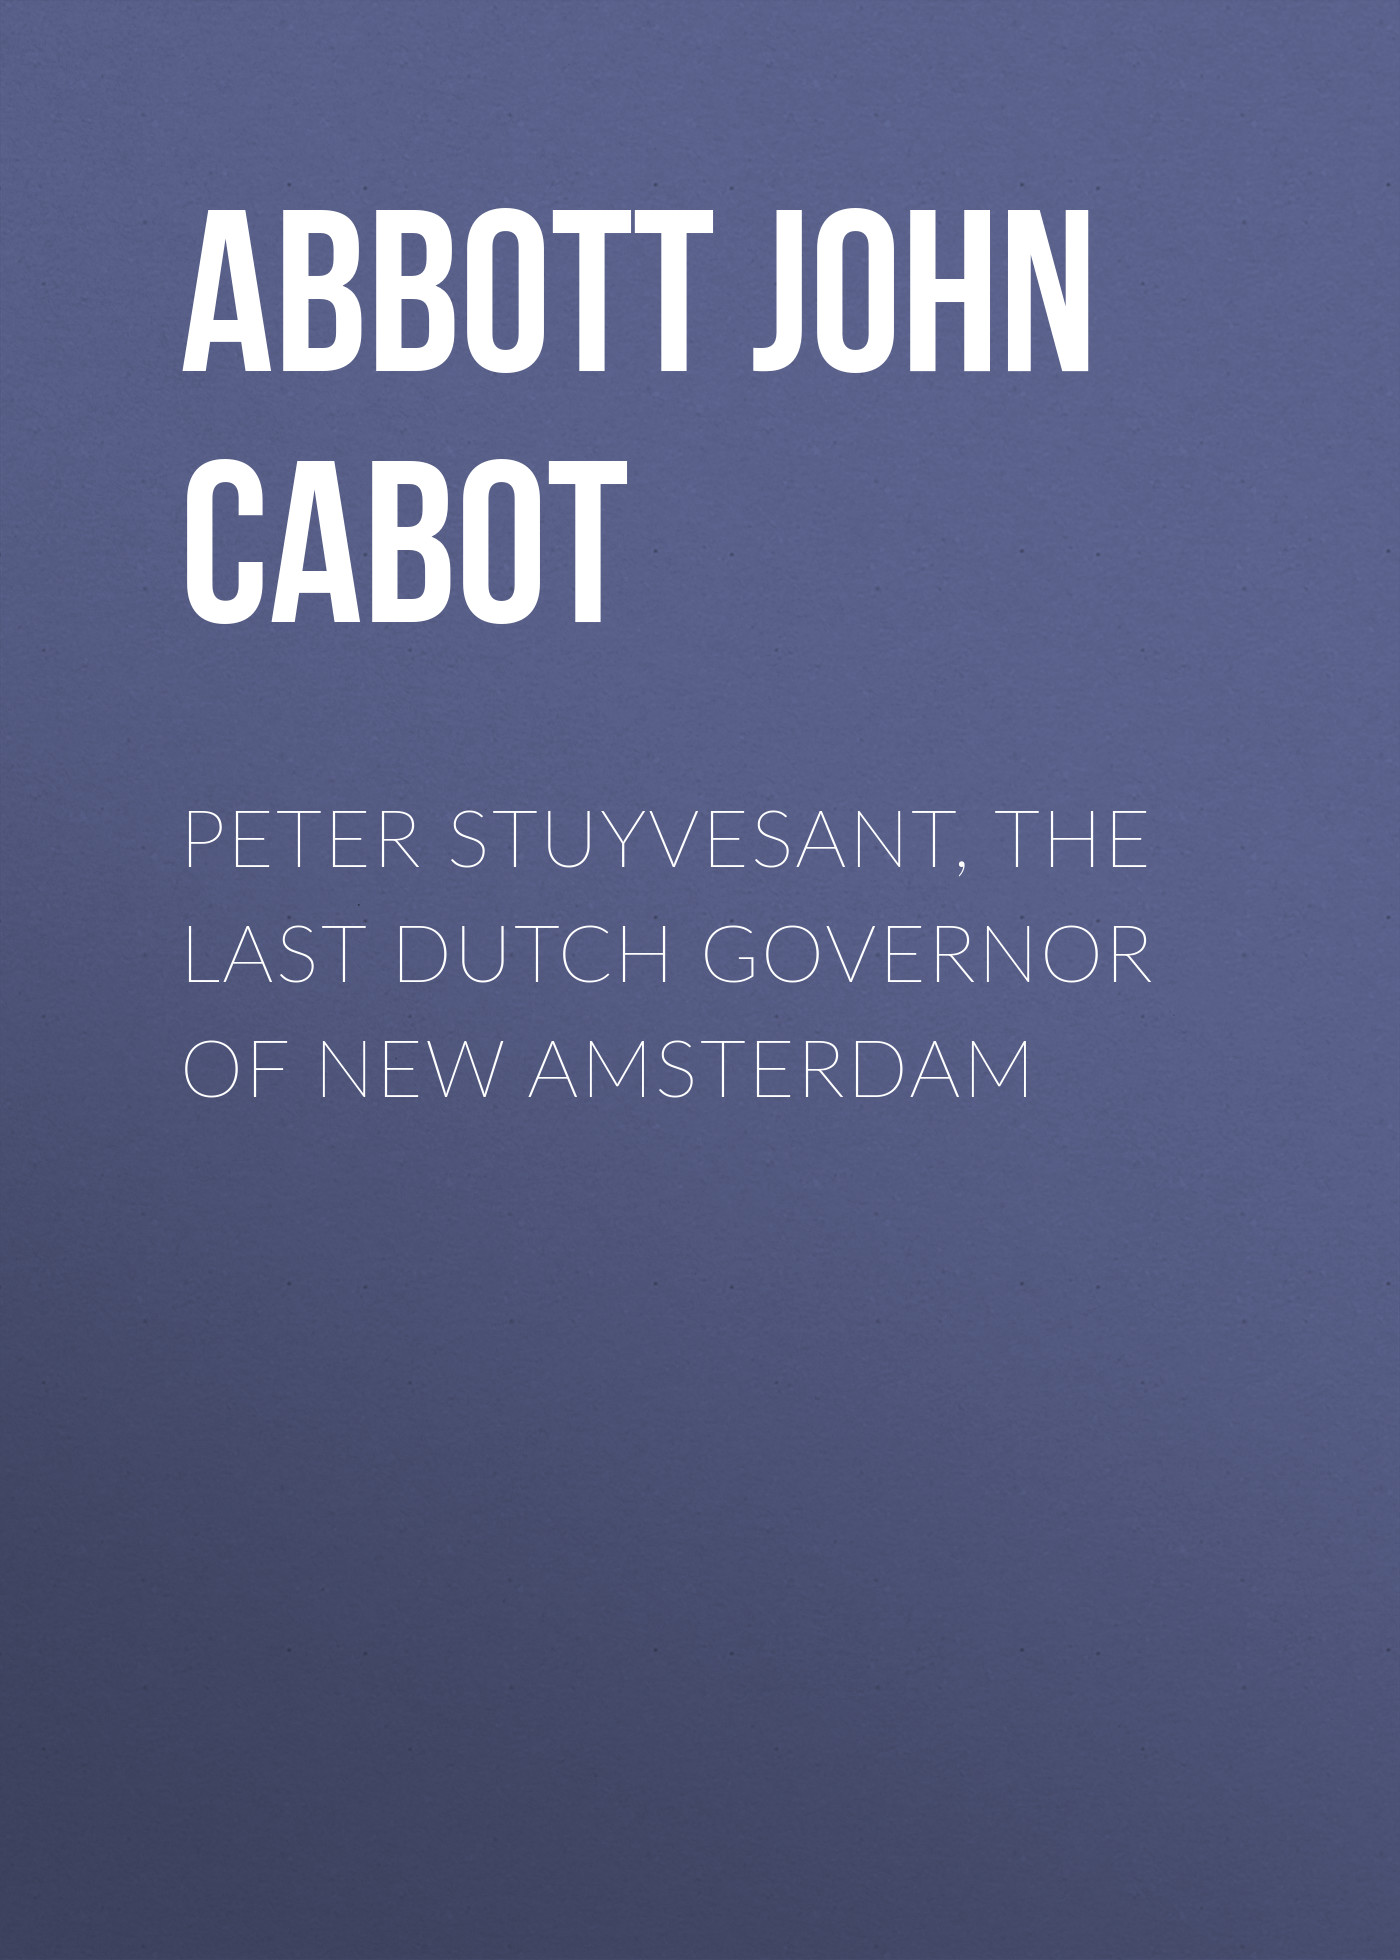 цена на Abbott John Stevens Cabot Peter Stuyvesant, the Last Dutch Governor of New Amsterdam